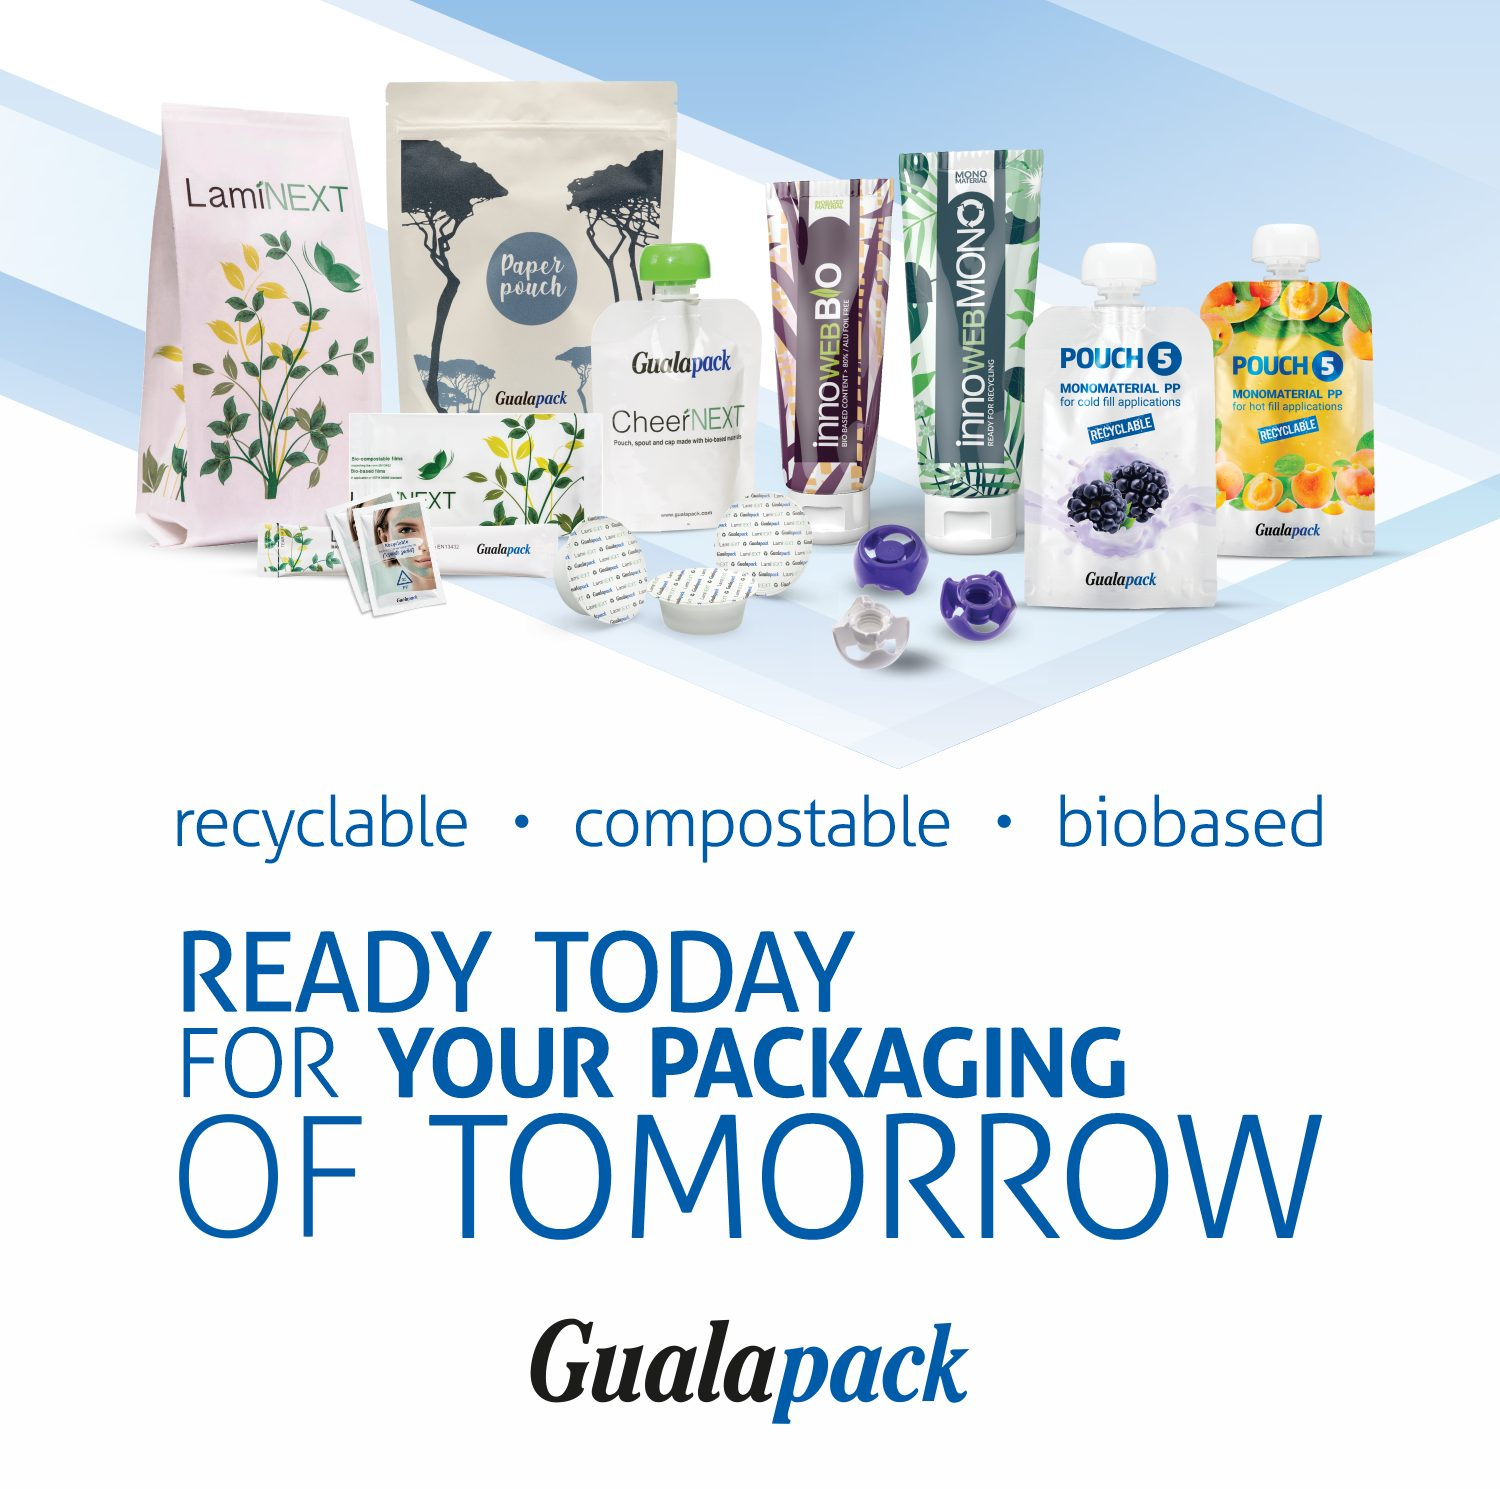 Gualapack Packaging